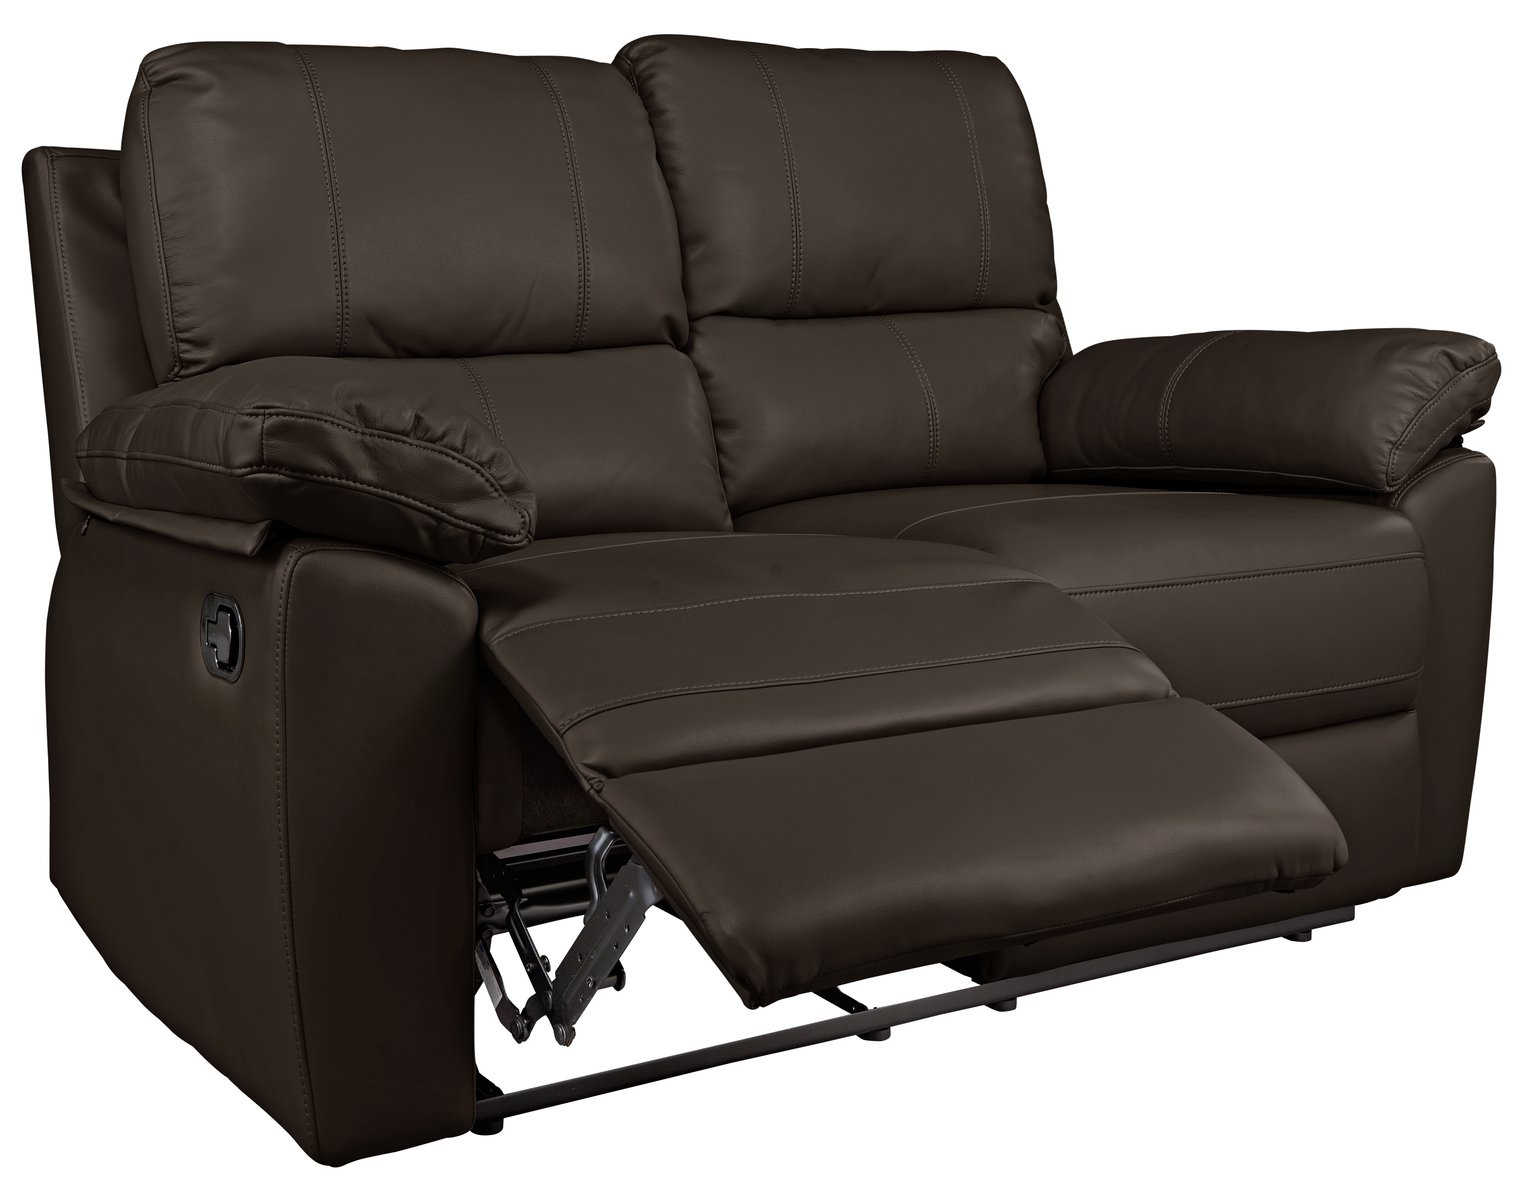 buy argos home toby 2 seat faux leather recliner sofa chocolate rh argos co uk leather reclining sofas made in usa leather reclining sofas near me